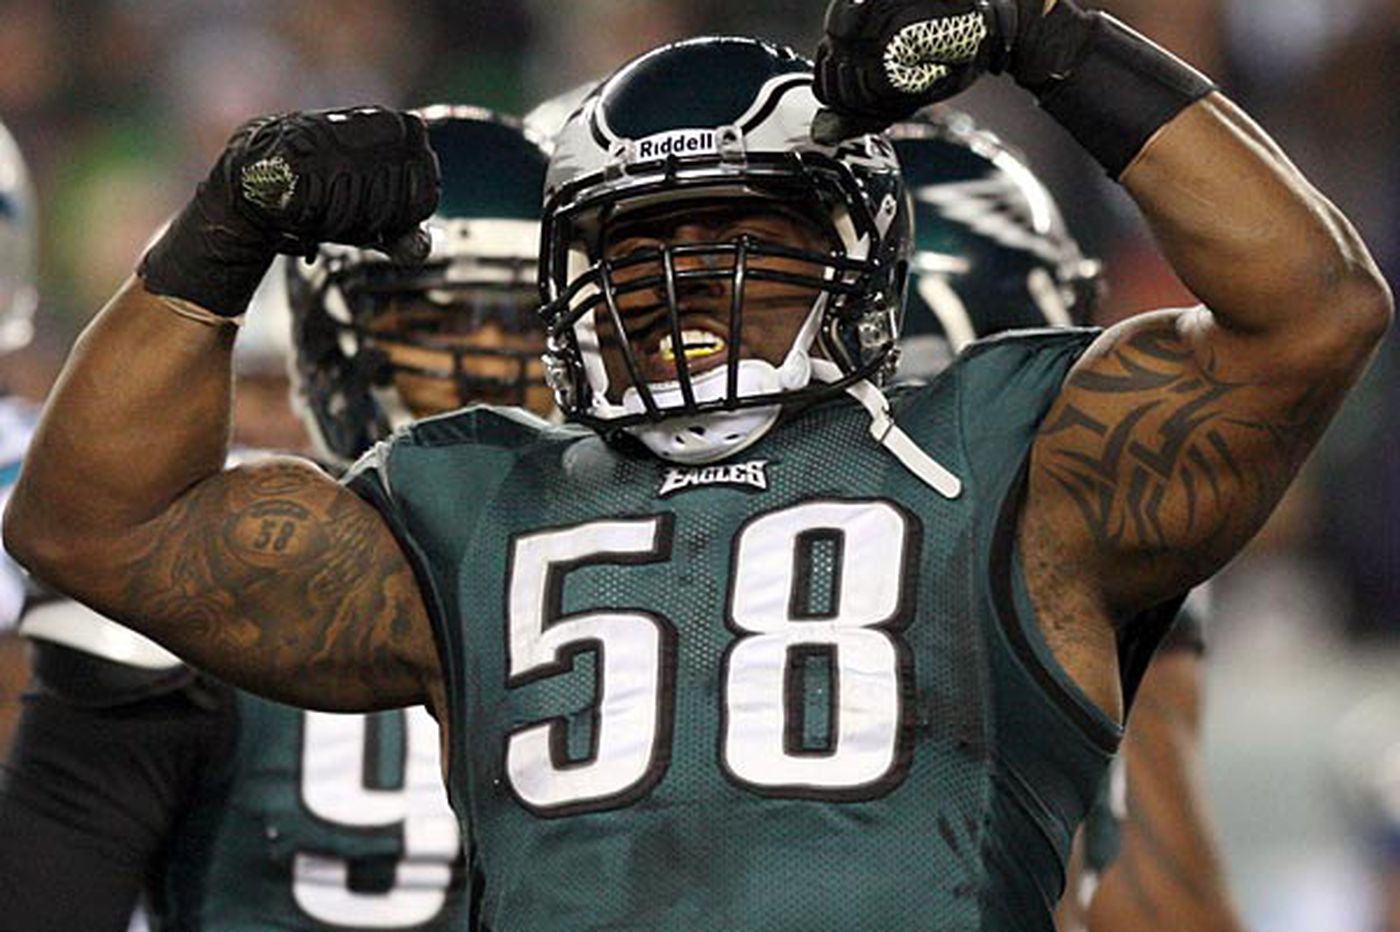 Eagles' Trent Cole emphasizes positive after Washburn firing